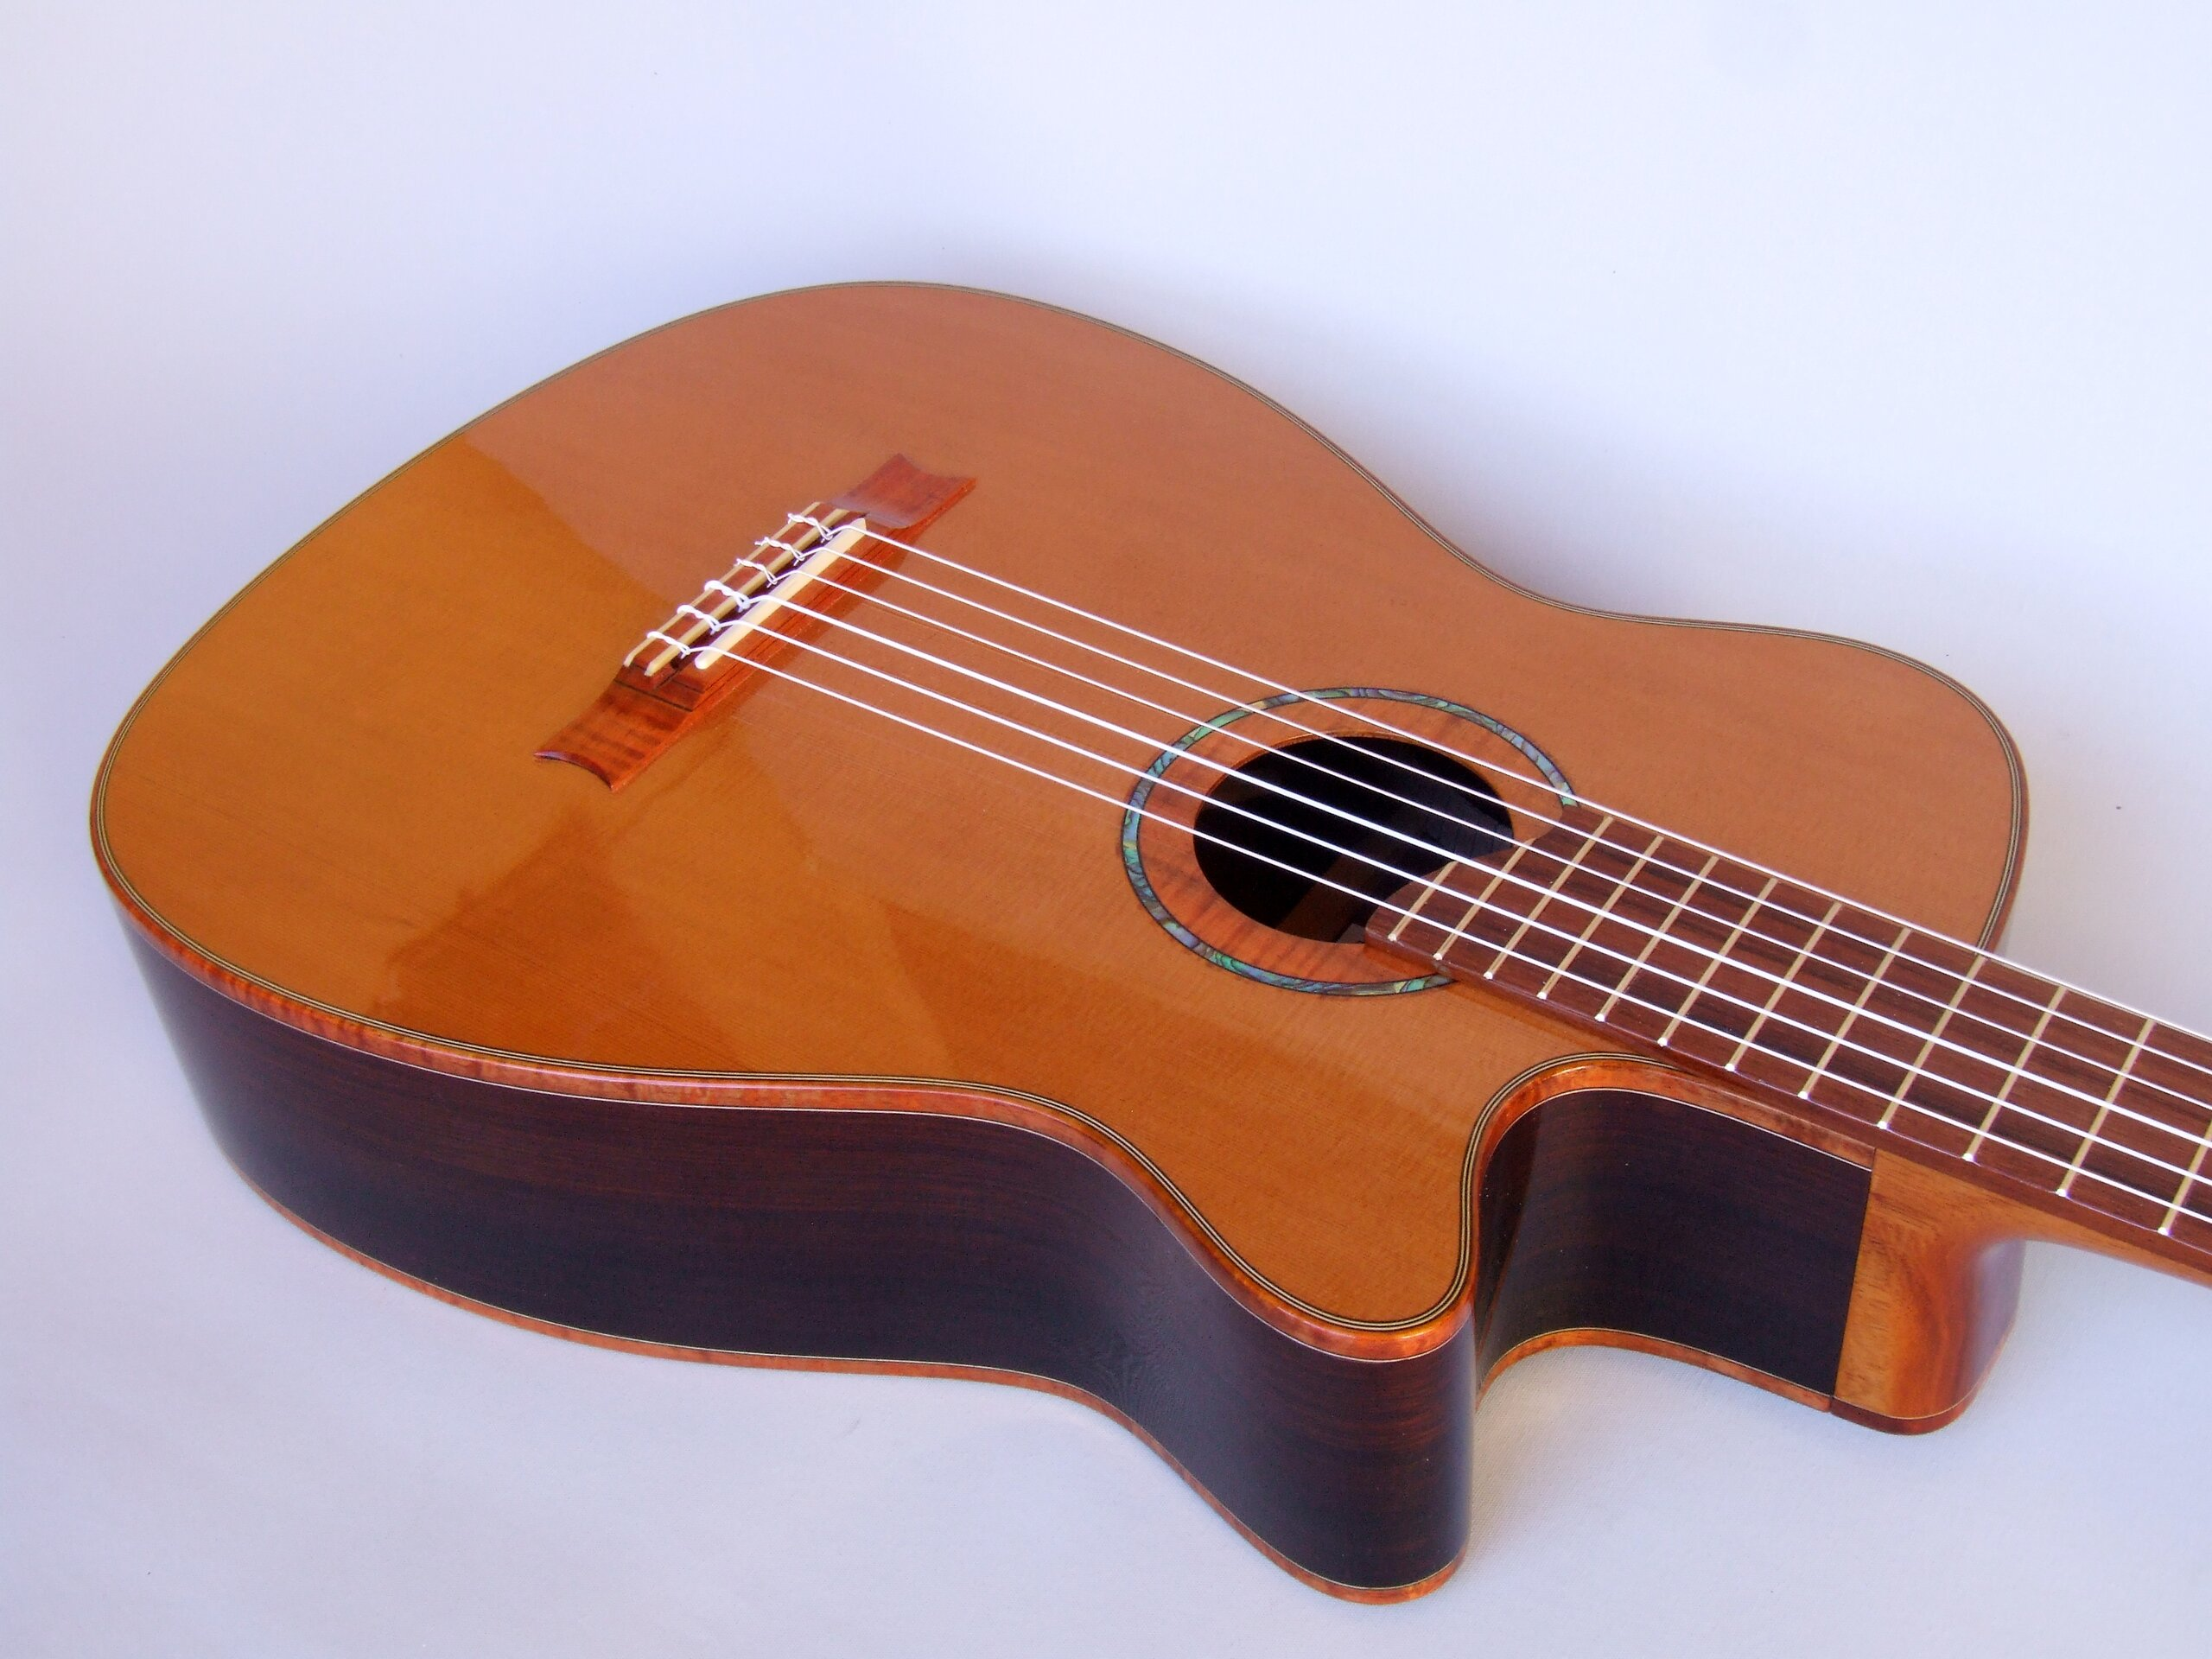 Neo-classical guitar with cutaway, cedar top, rosewood back and sides